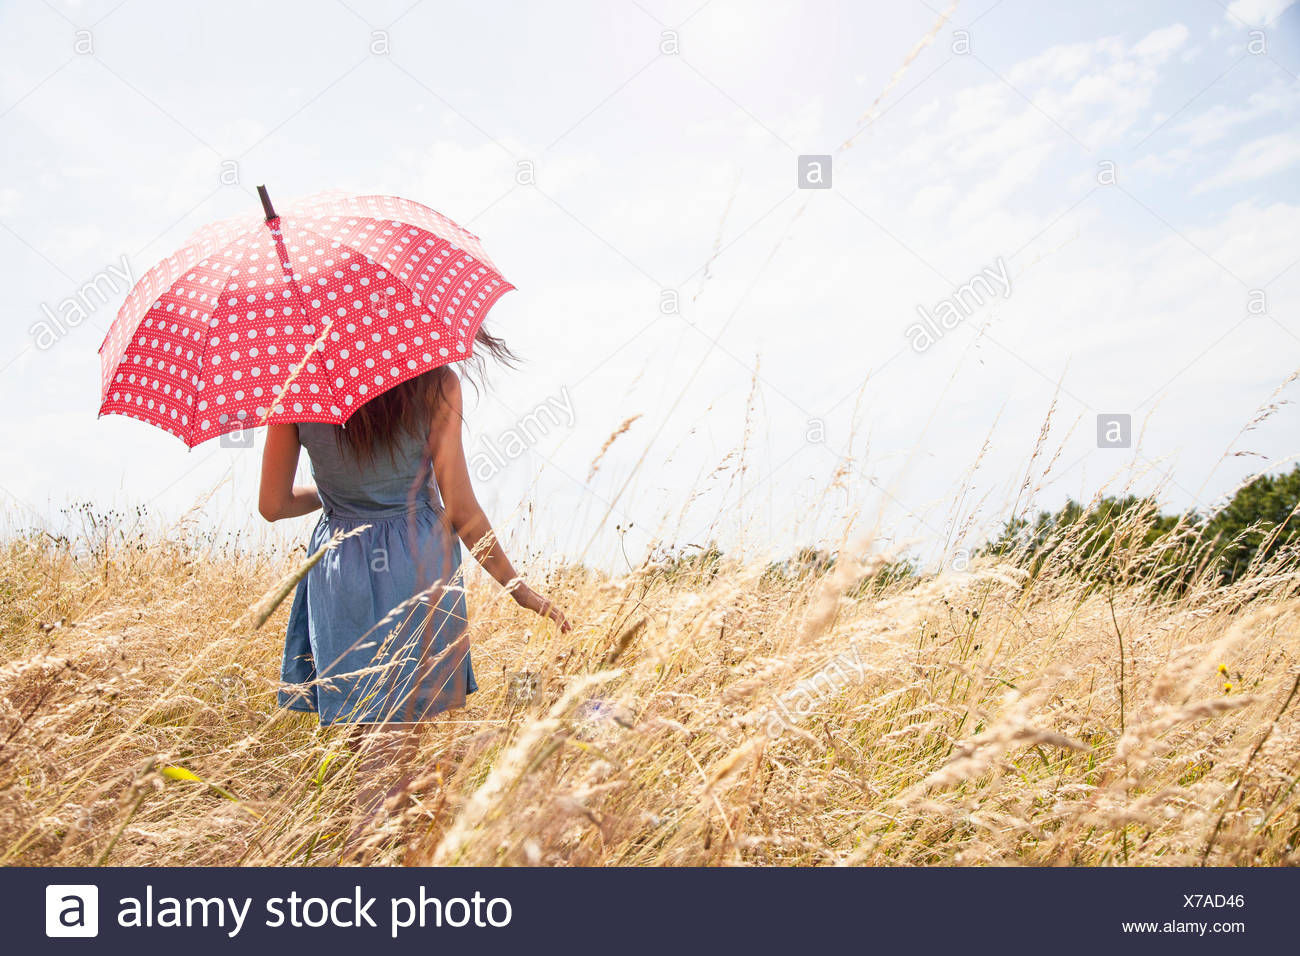 Young woman in field with umbrella - Stock Image